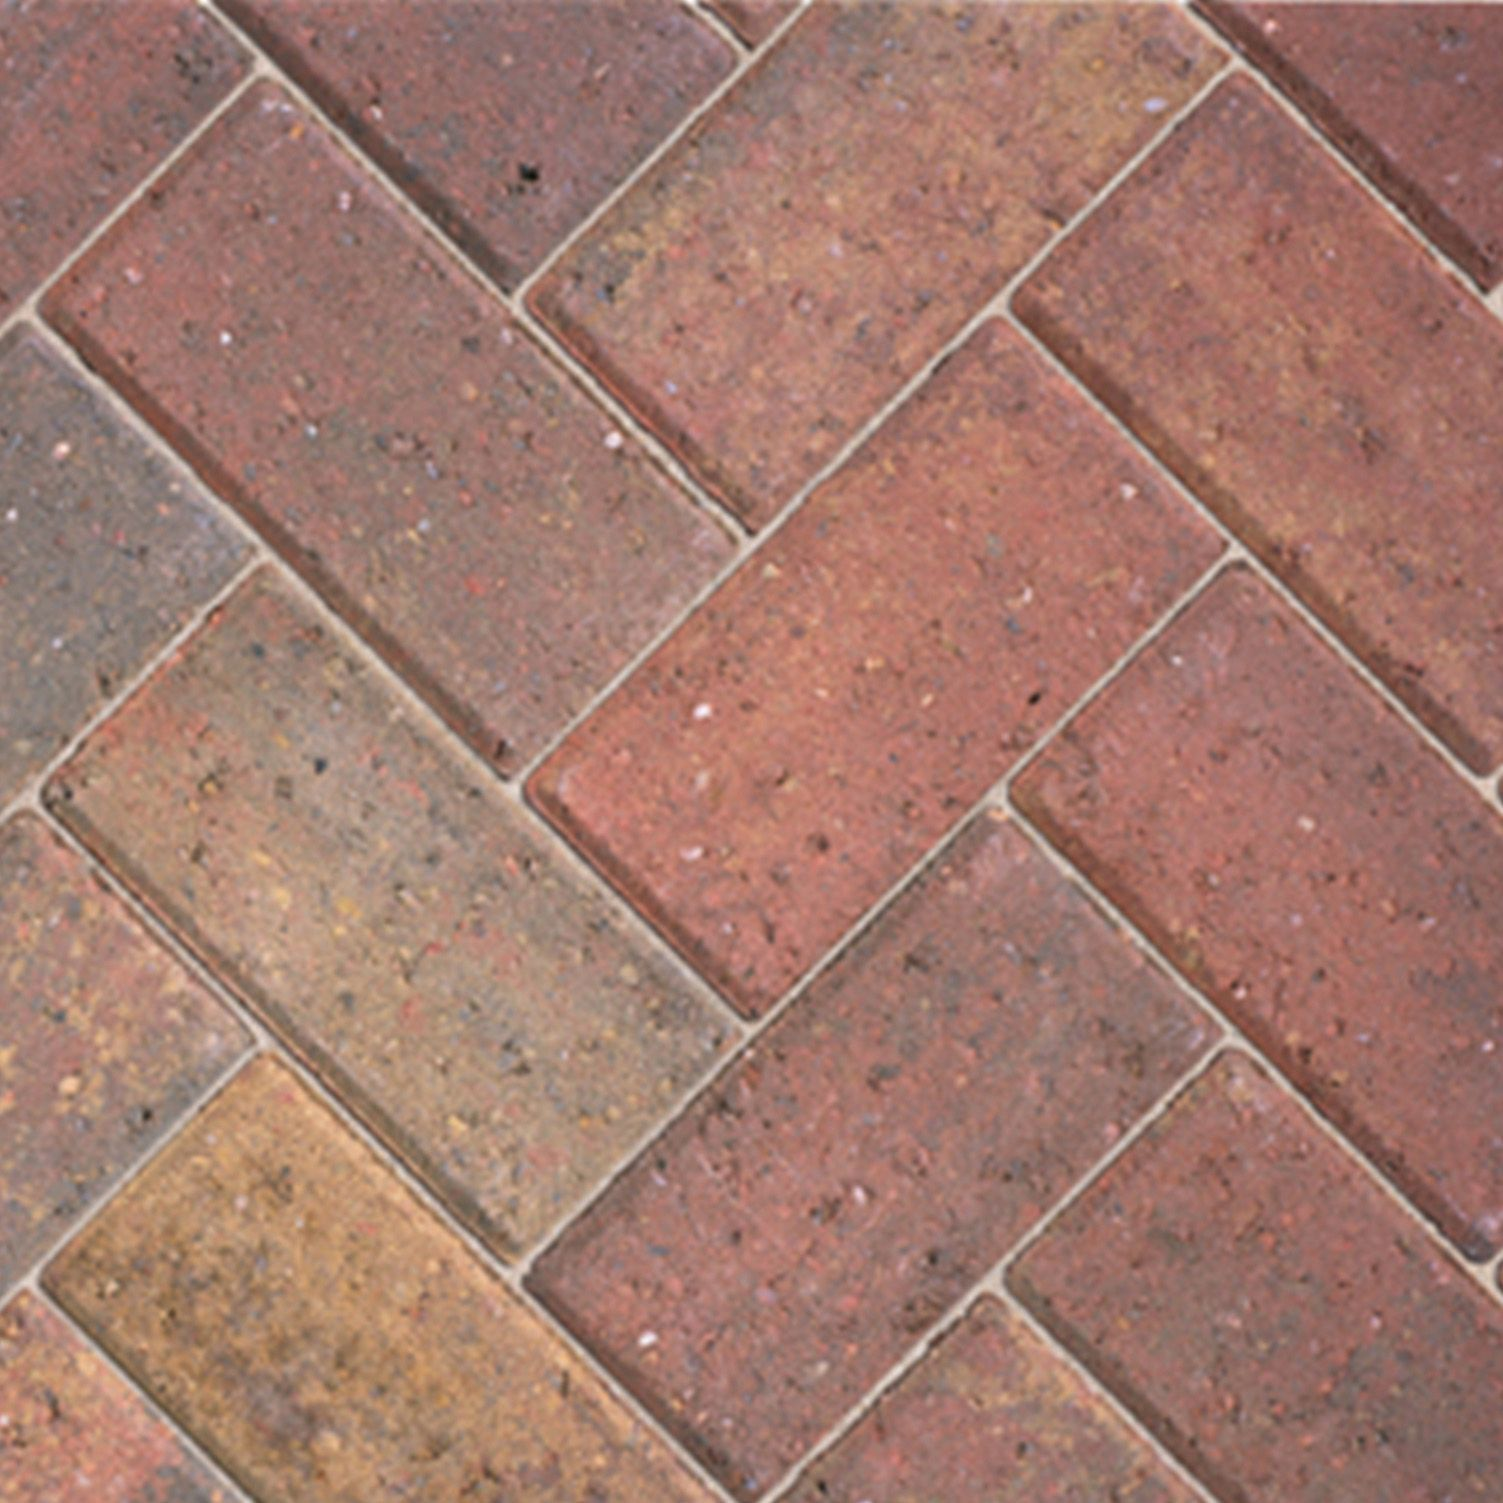 Autumn Driveway Block Paving L 200mm W 100mm Pack Of